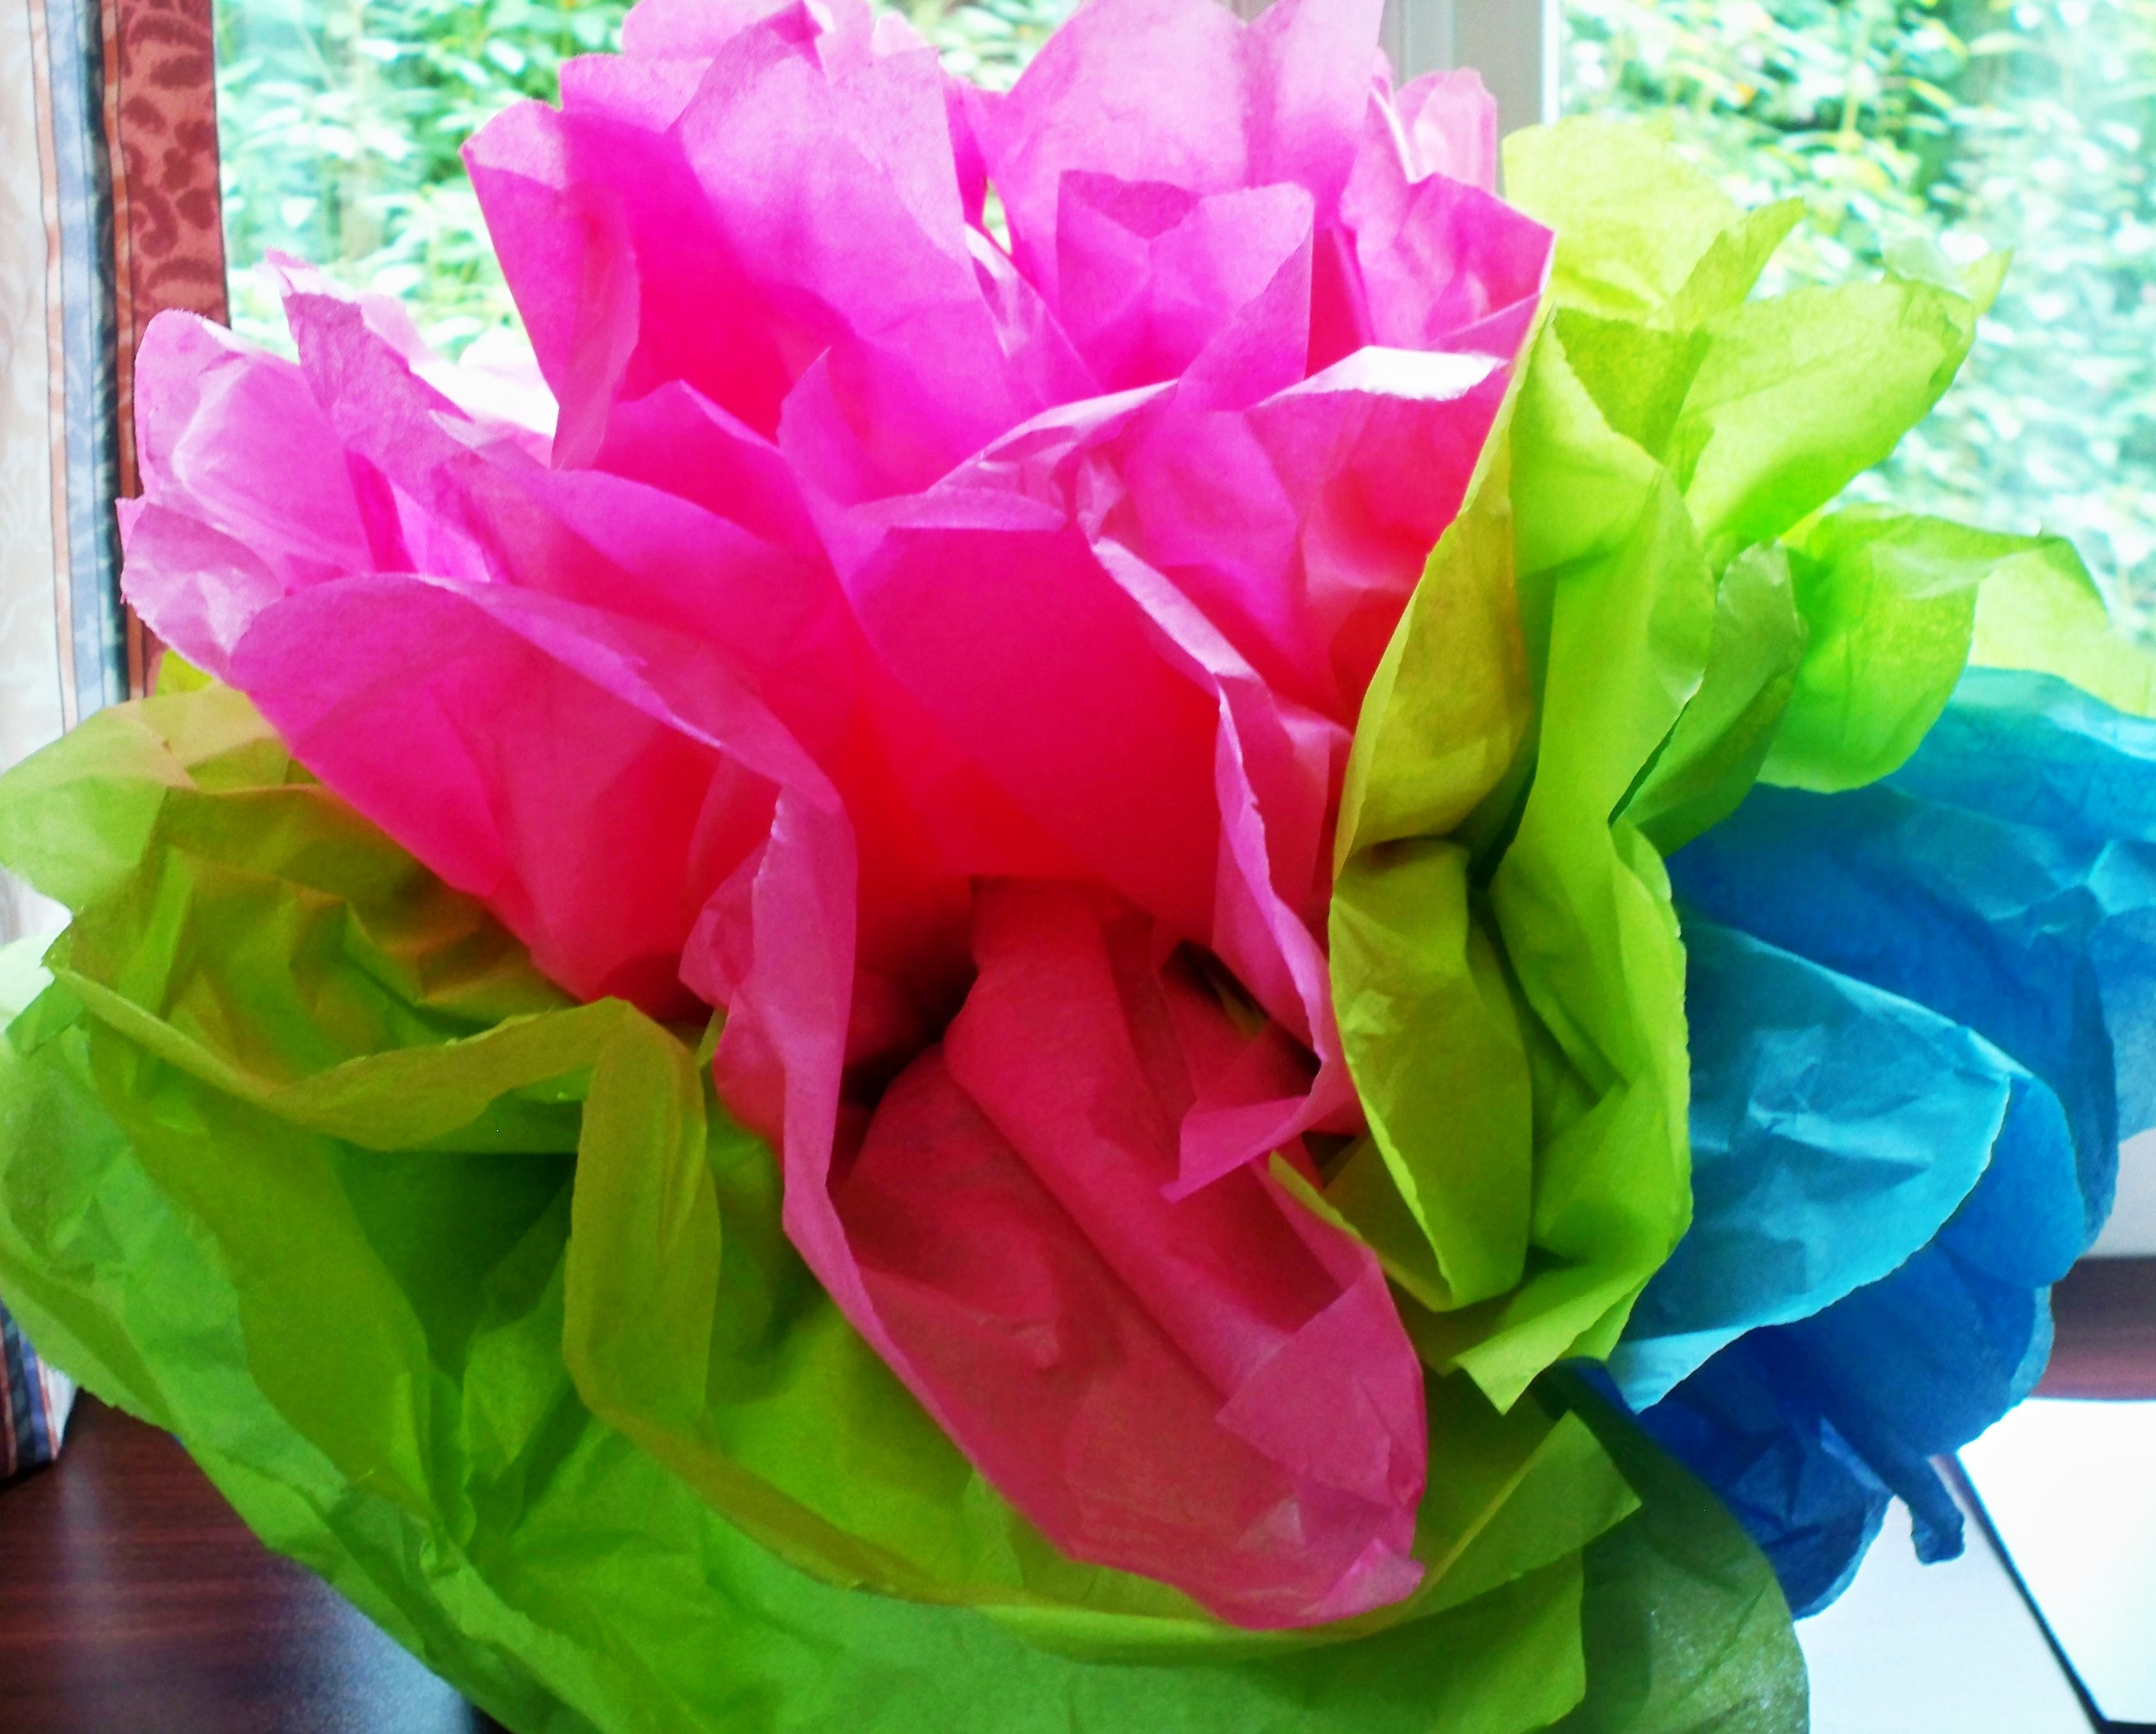 This large hawaiian tissue paper flower was created by the residents this large hawaiian tissue paper flower was created by the residents of arbutus they enjoyed izmirmasajfo